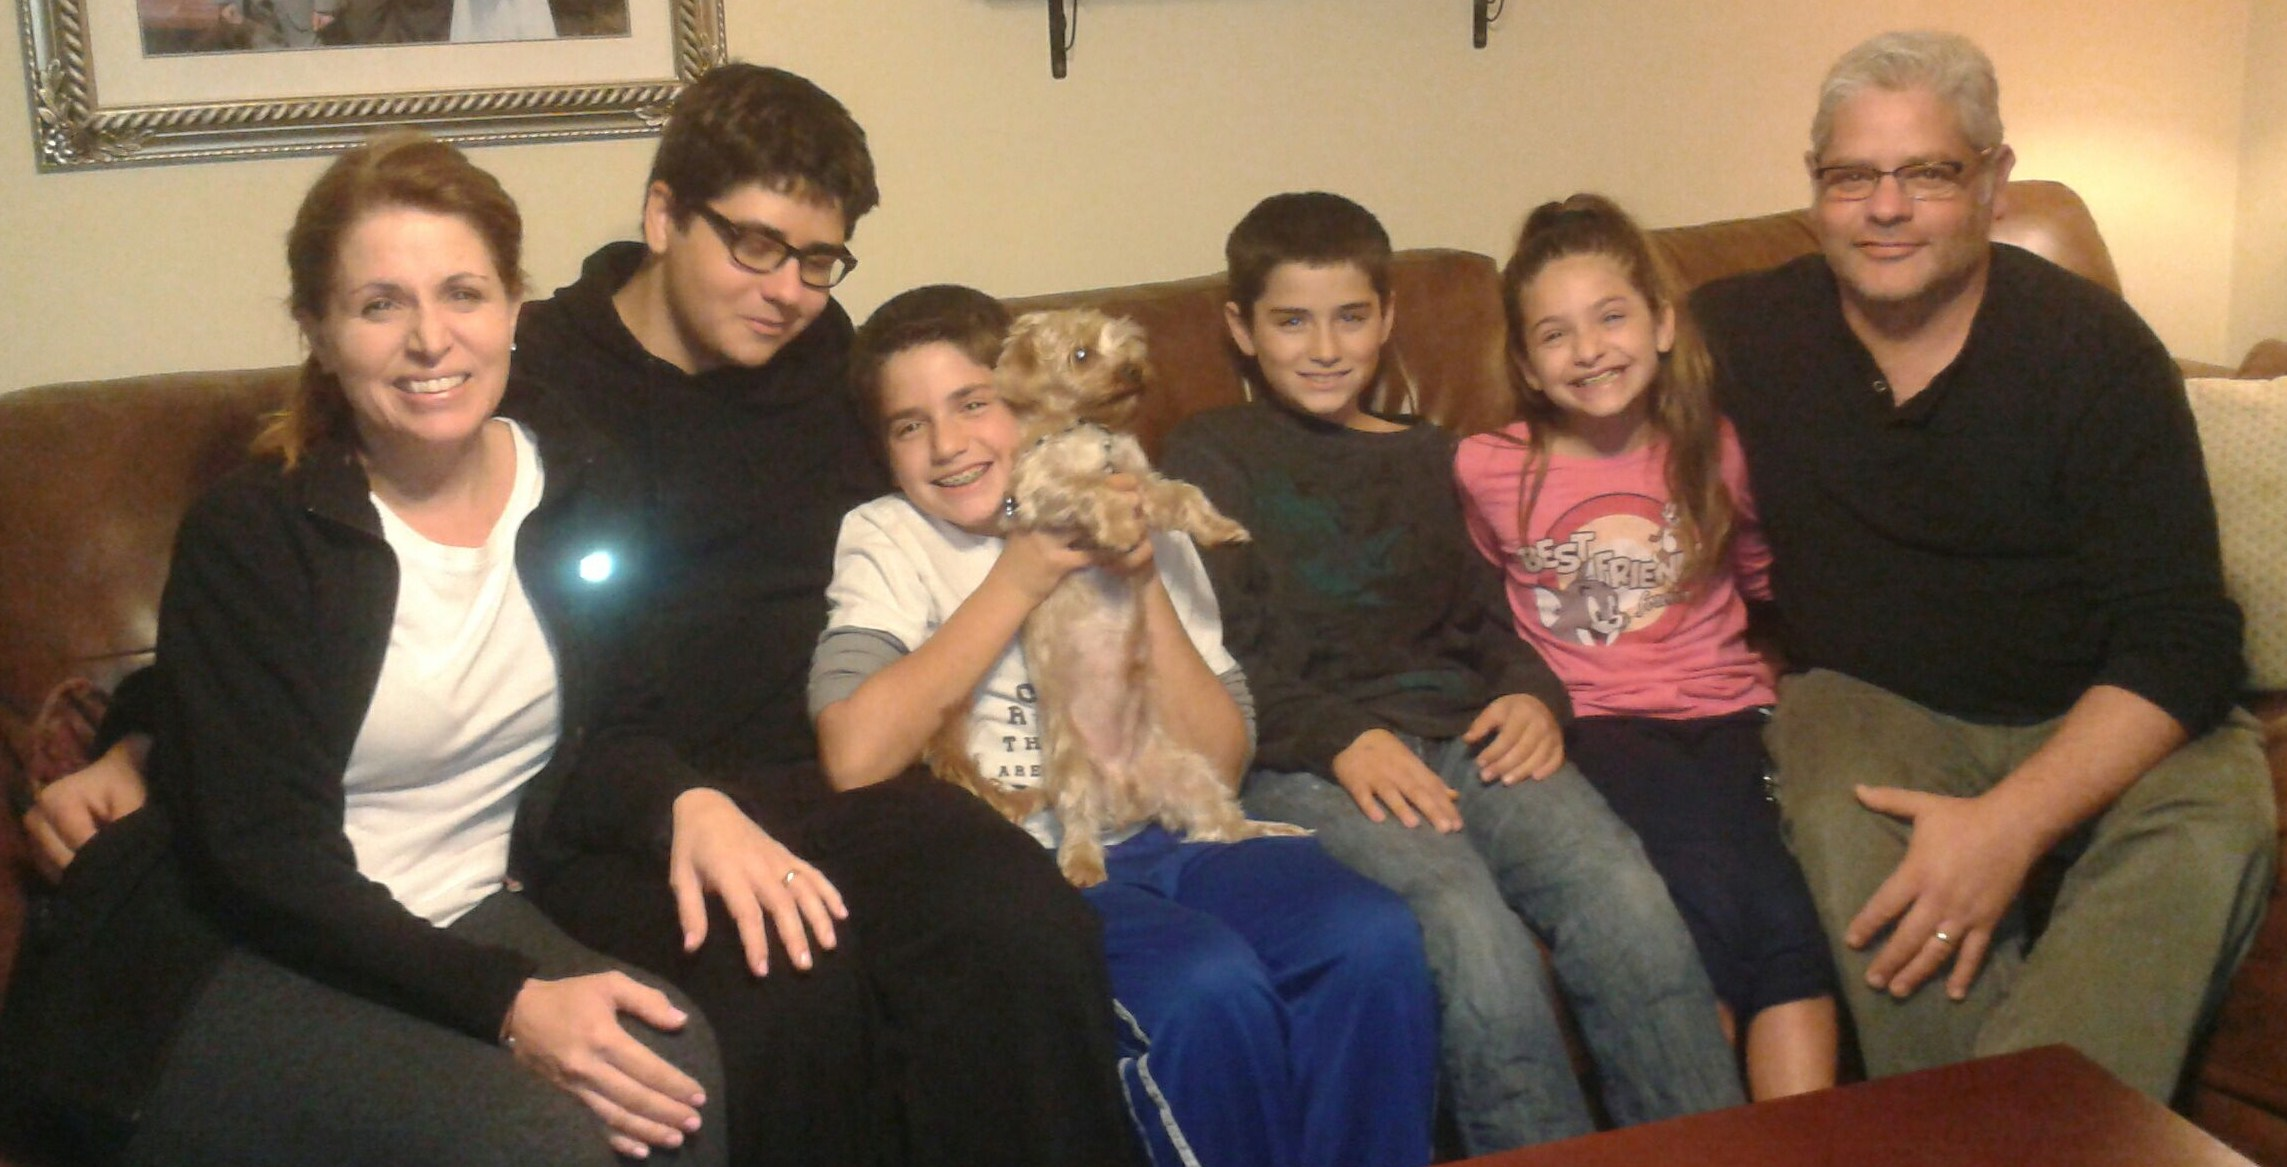 Reggie's New Family